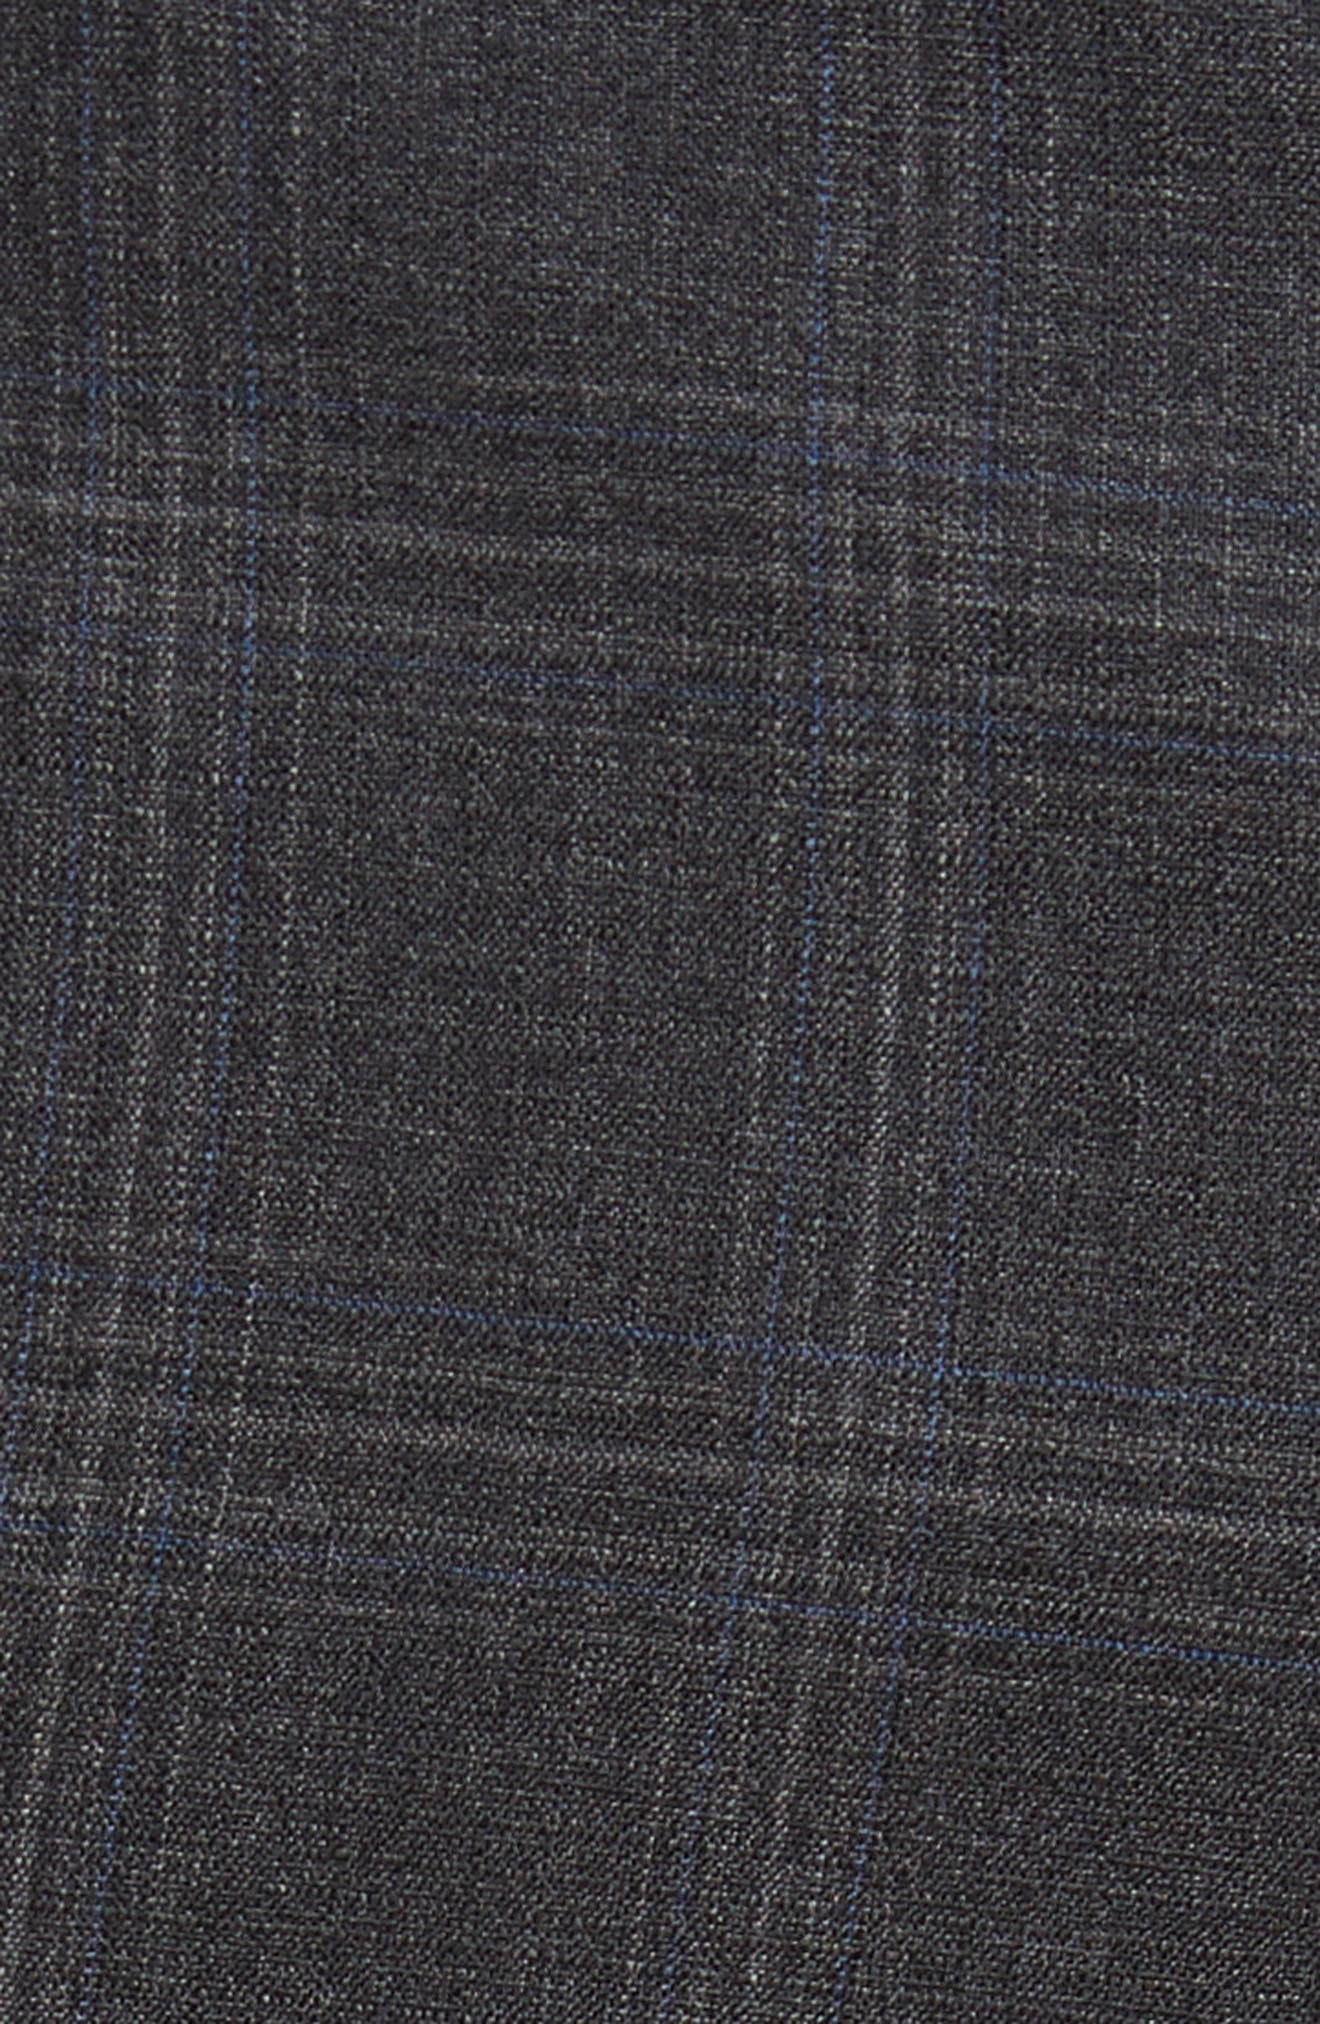 Devon Flat Front Plaid Wool Trousers,                             Alternate thumbnail 2, color,                             020